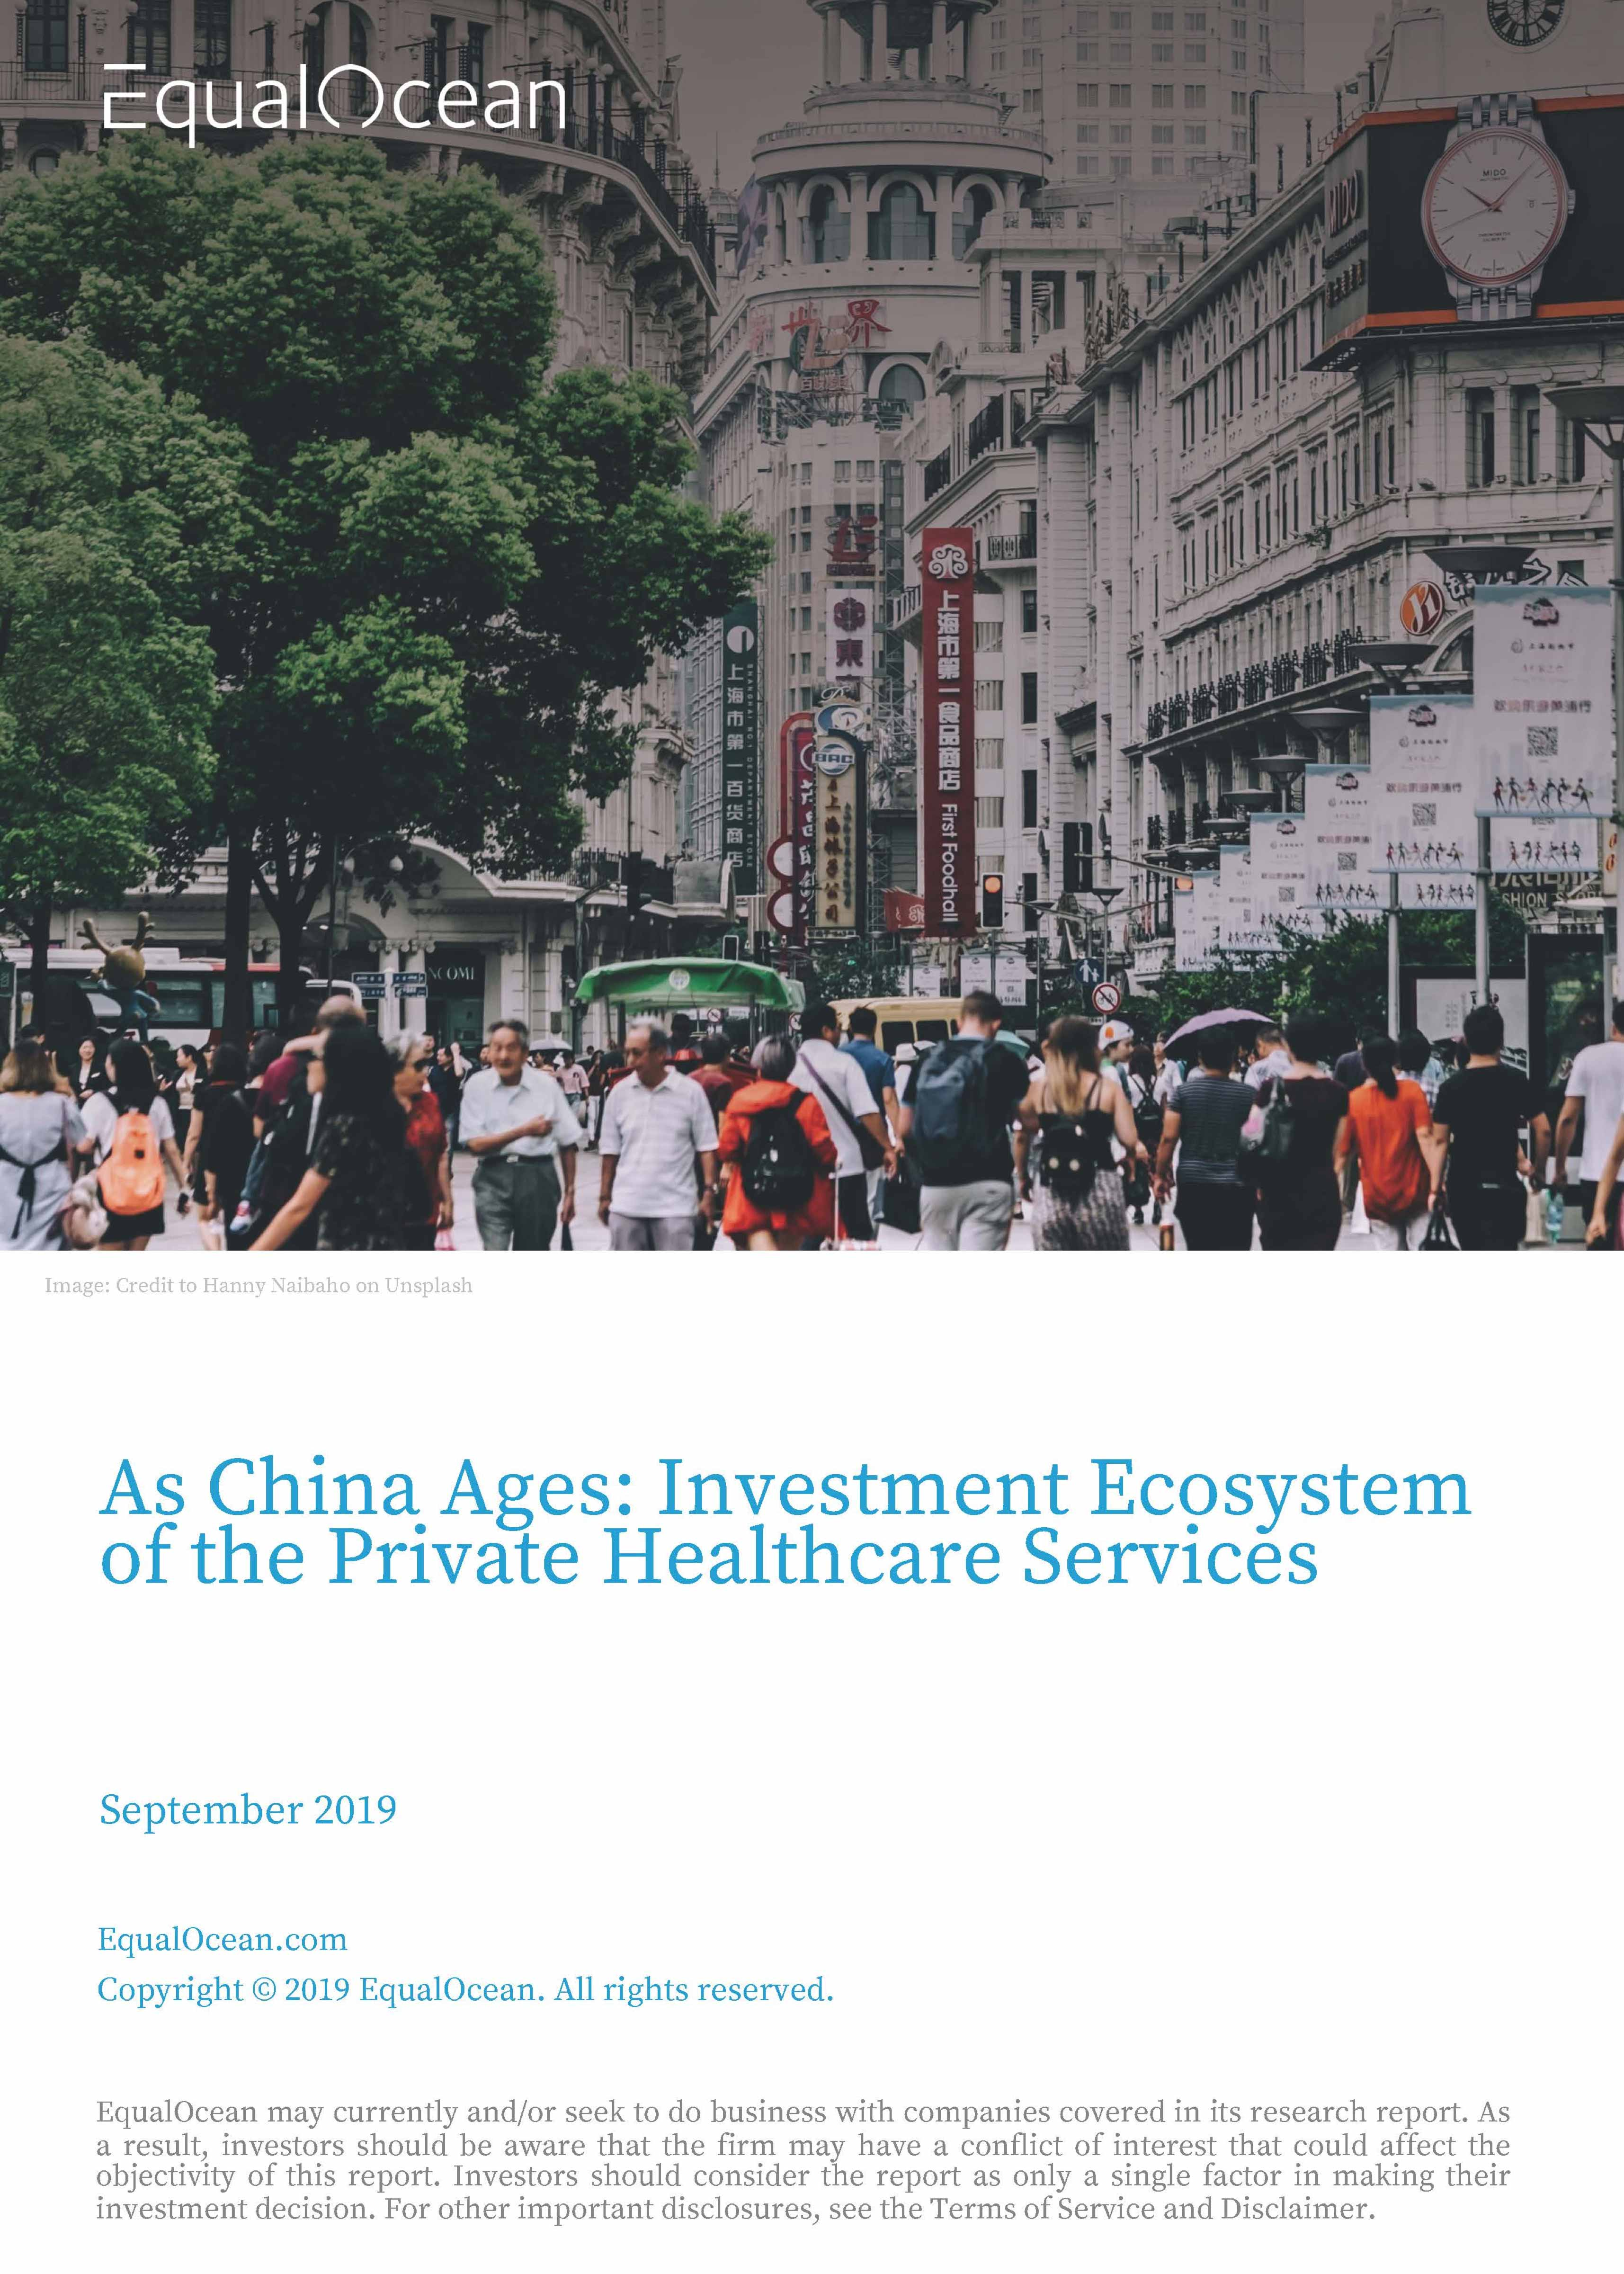 As China Ages: Investment Ecosystem of the Private Healthcare Services